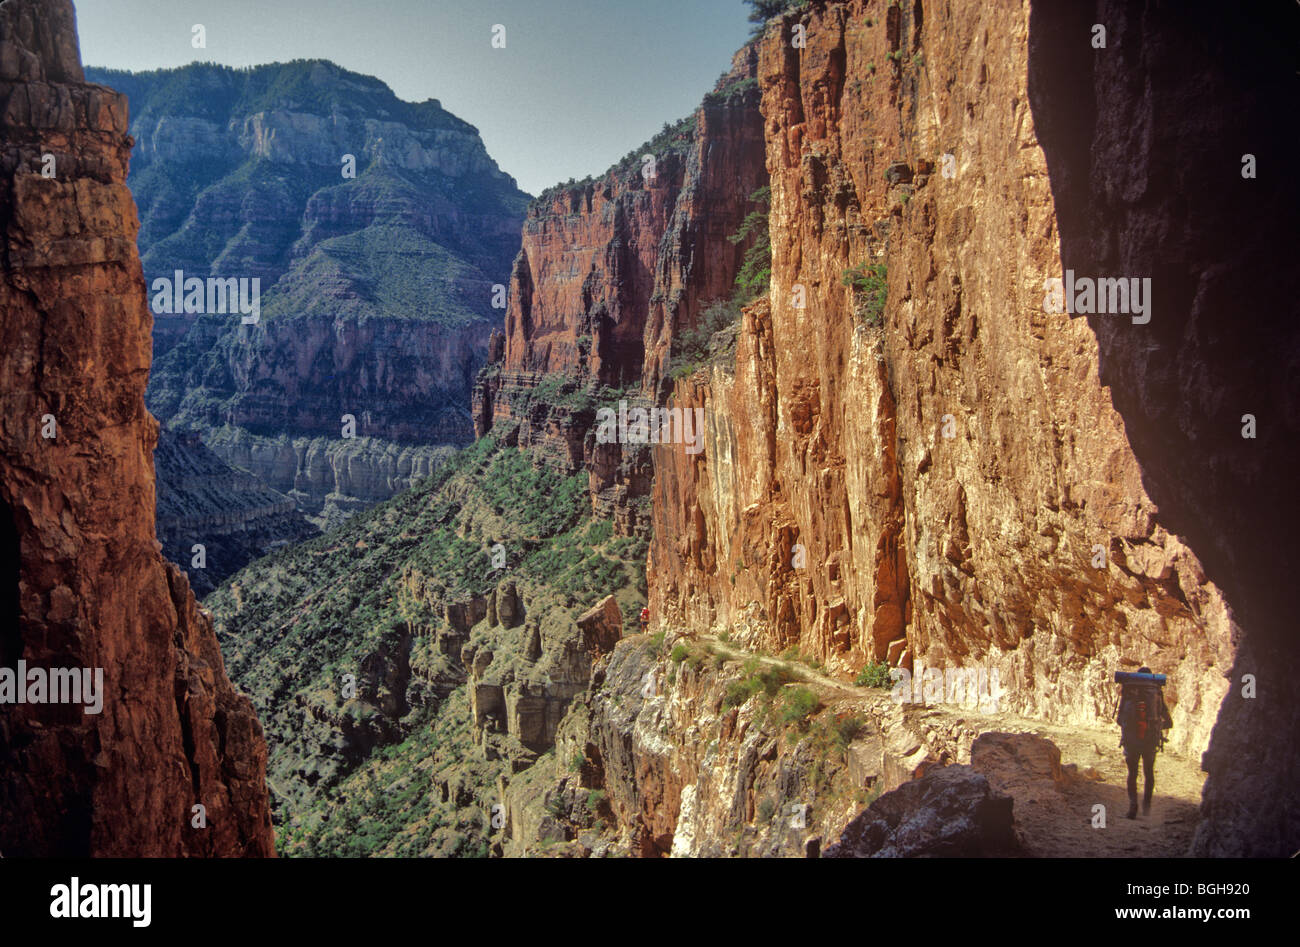 Hiker on the North Kaibab Trail, a trail from the North Rim to the Colorado River, Grand Canyon National Park, Arizona - Stock Image